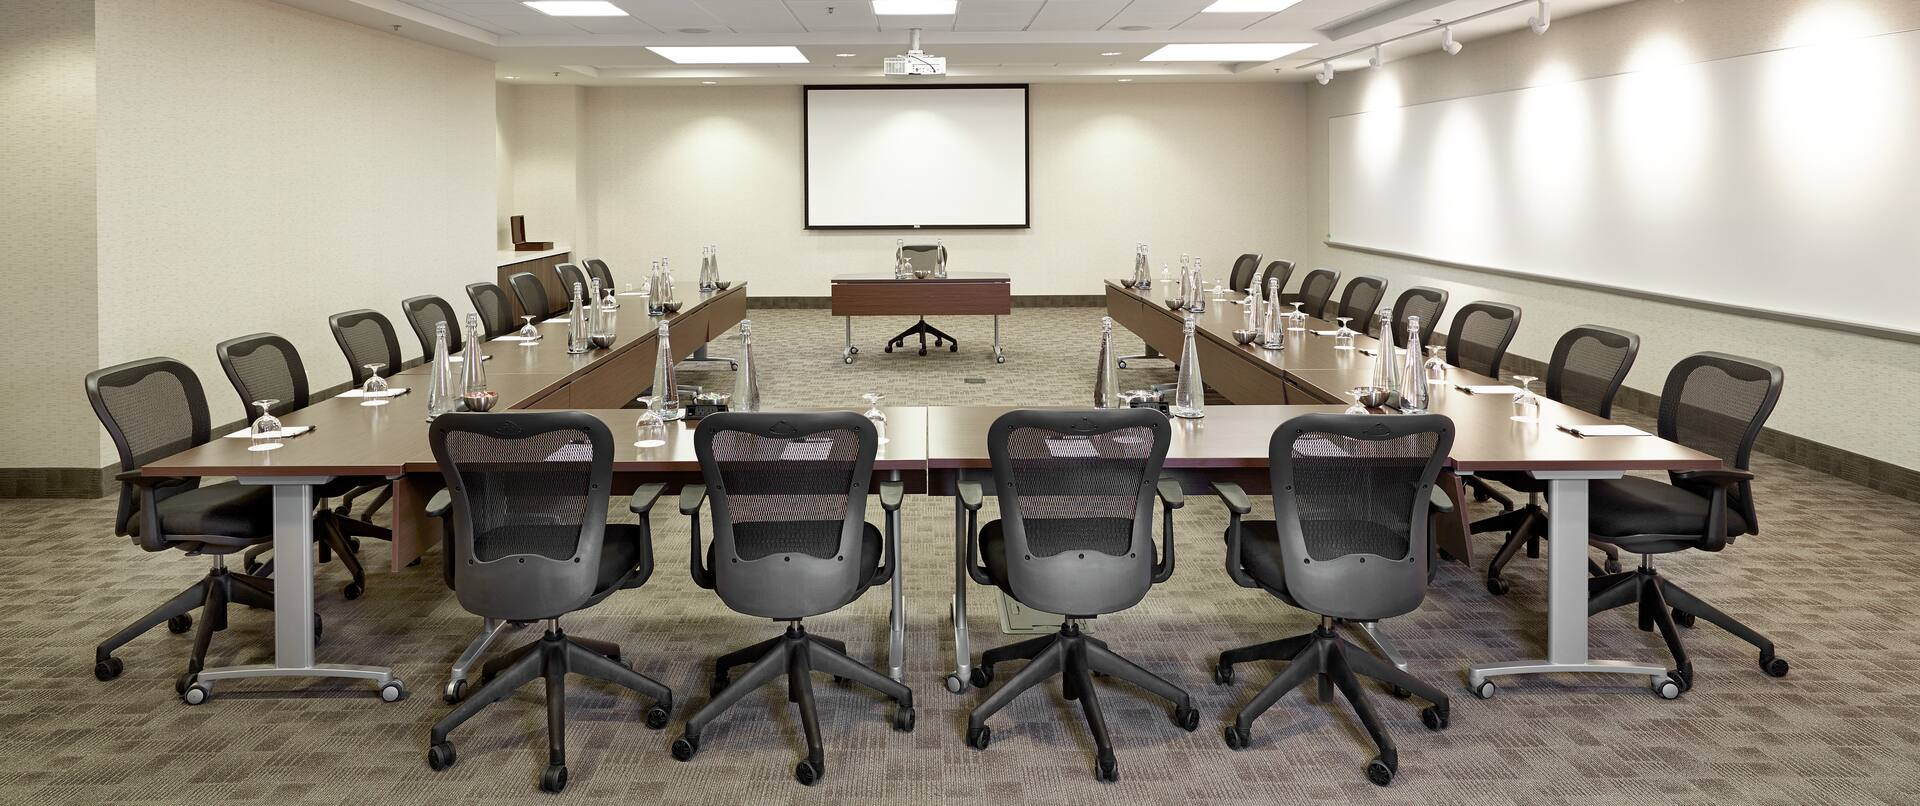 SilverBirch Conference Center Meeting Room with U-Shape Tables Setup